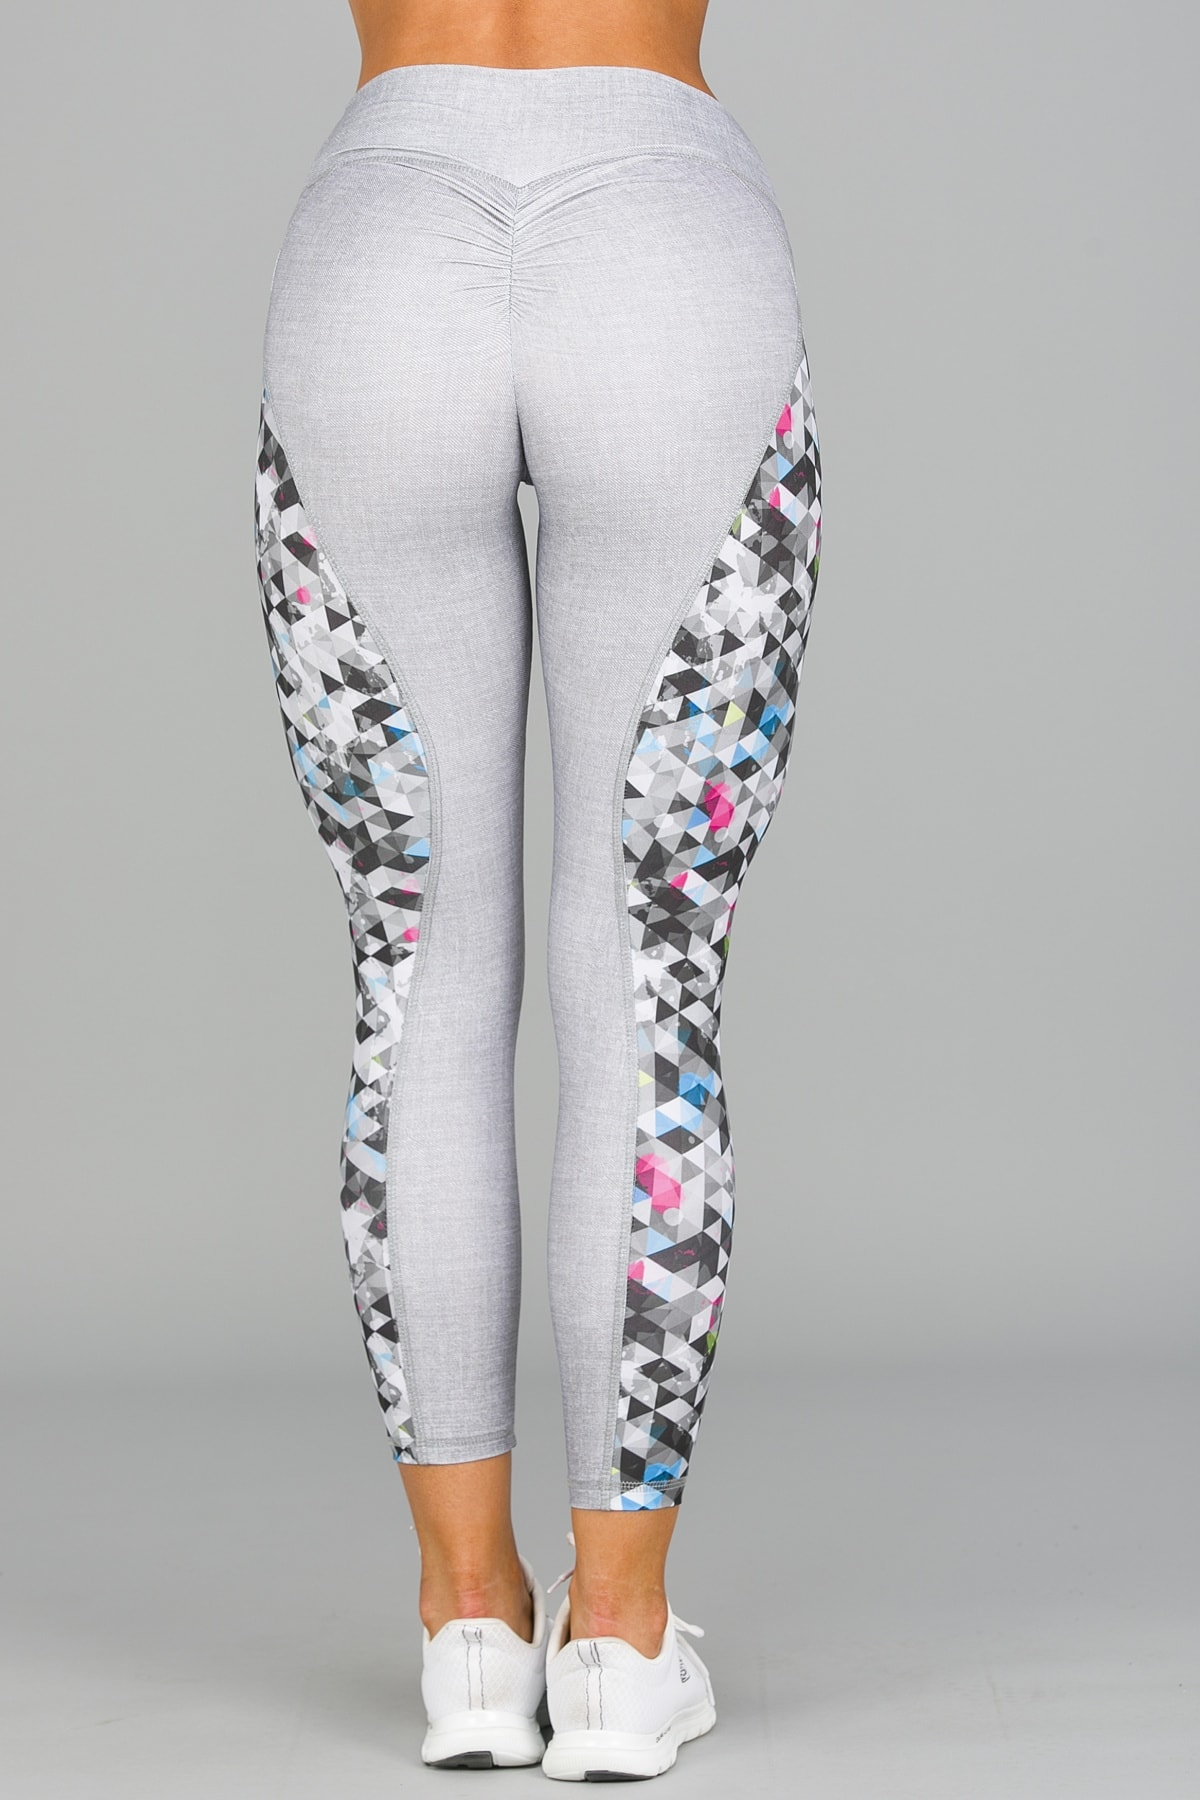 ABS2B Fitness Zero Flaw High Rise Leggings – Silver8